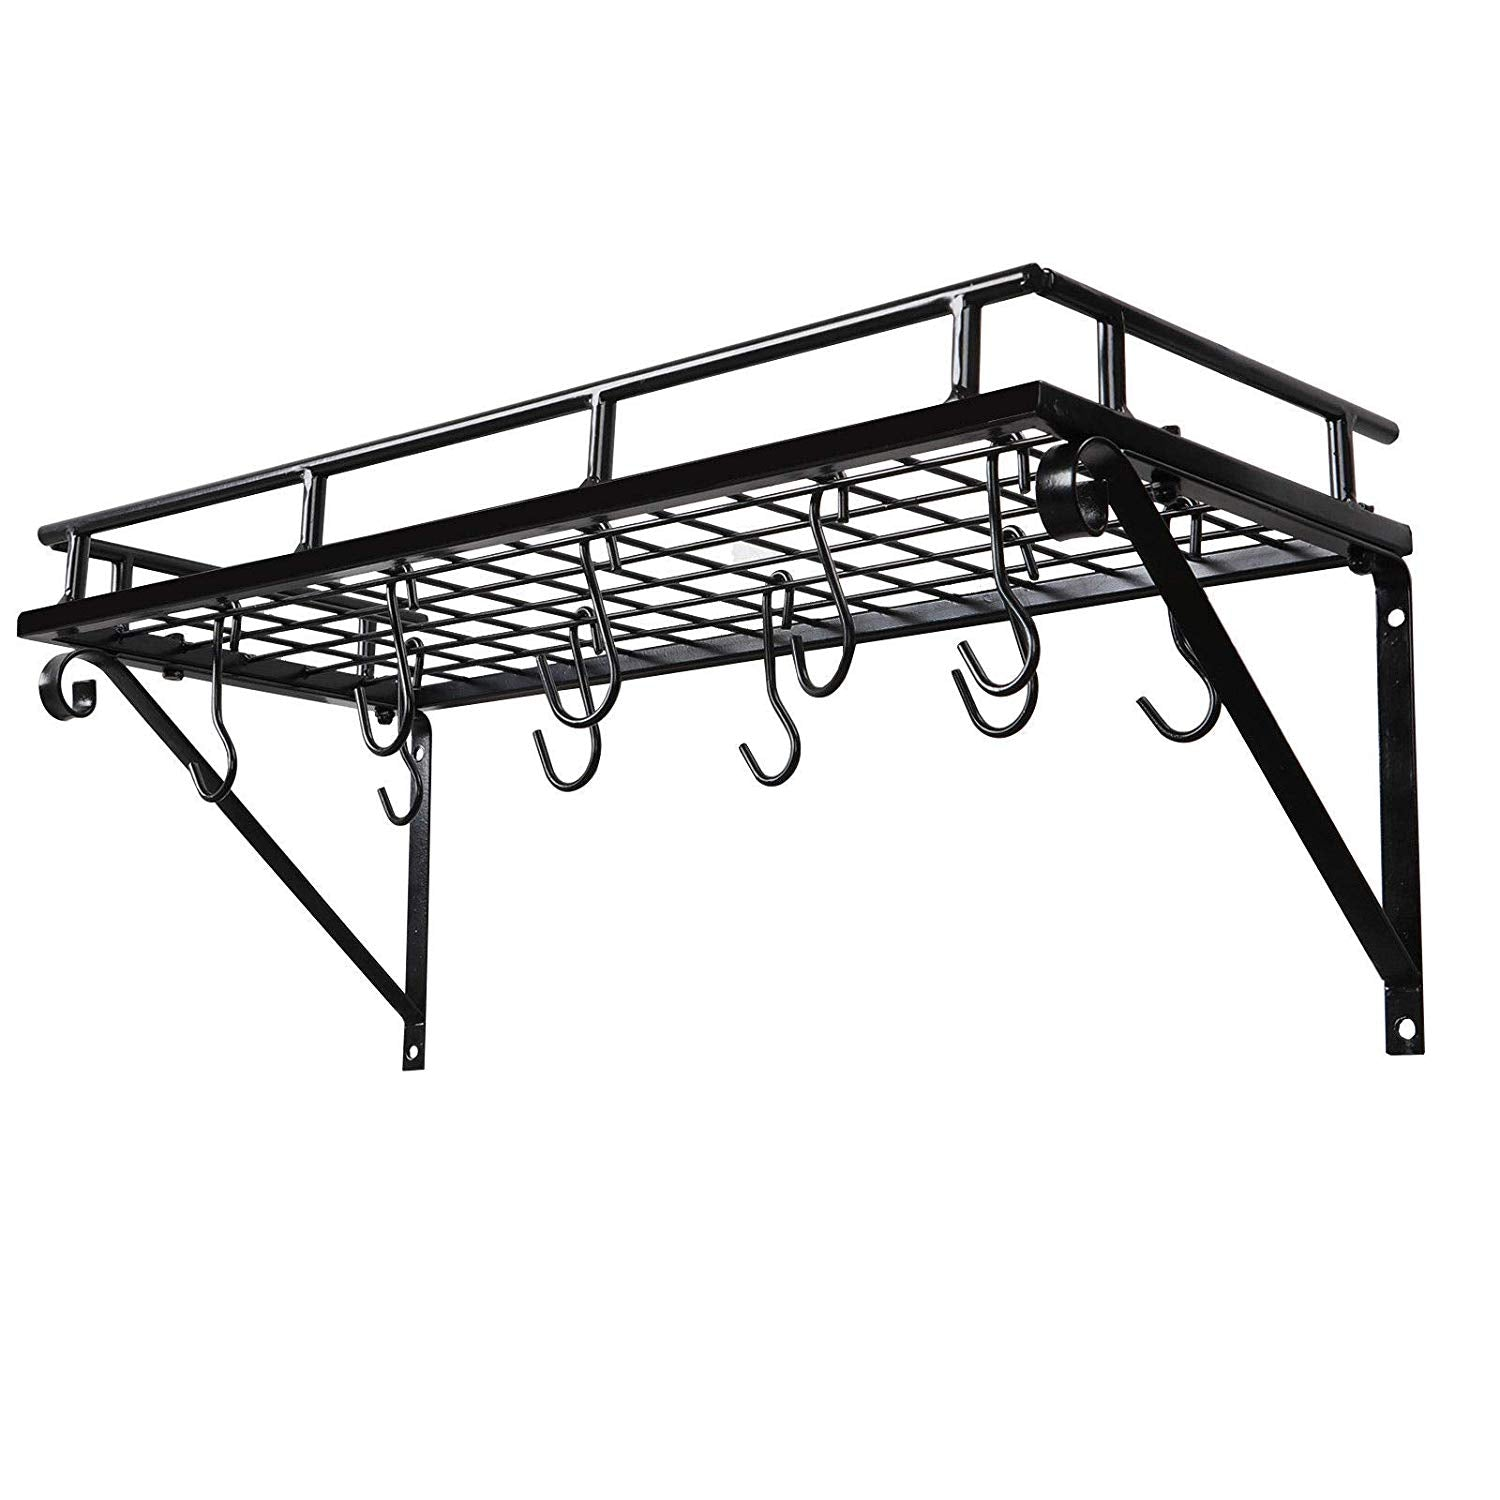 Pot Rack Anti-rusting Surface Durable Steel Iron Hanger With 10 S-type Hooks